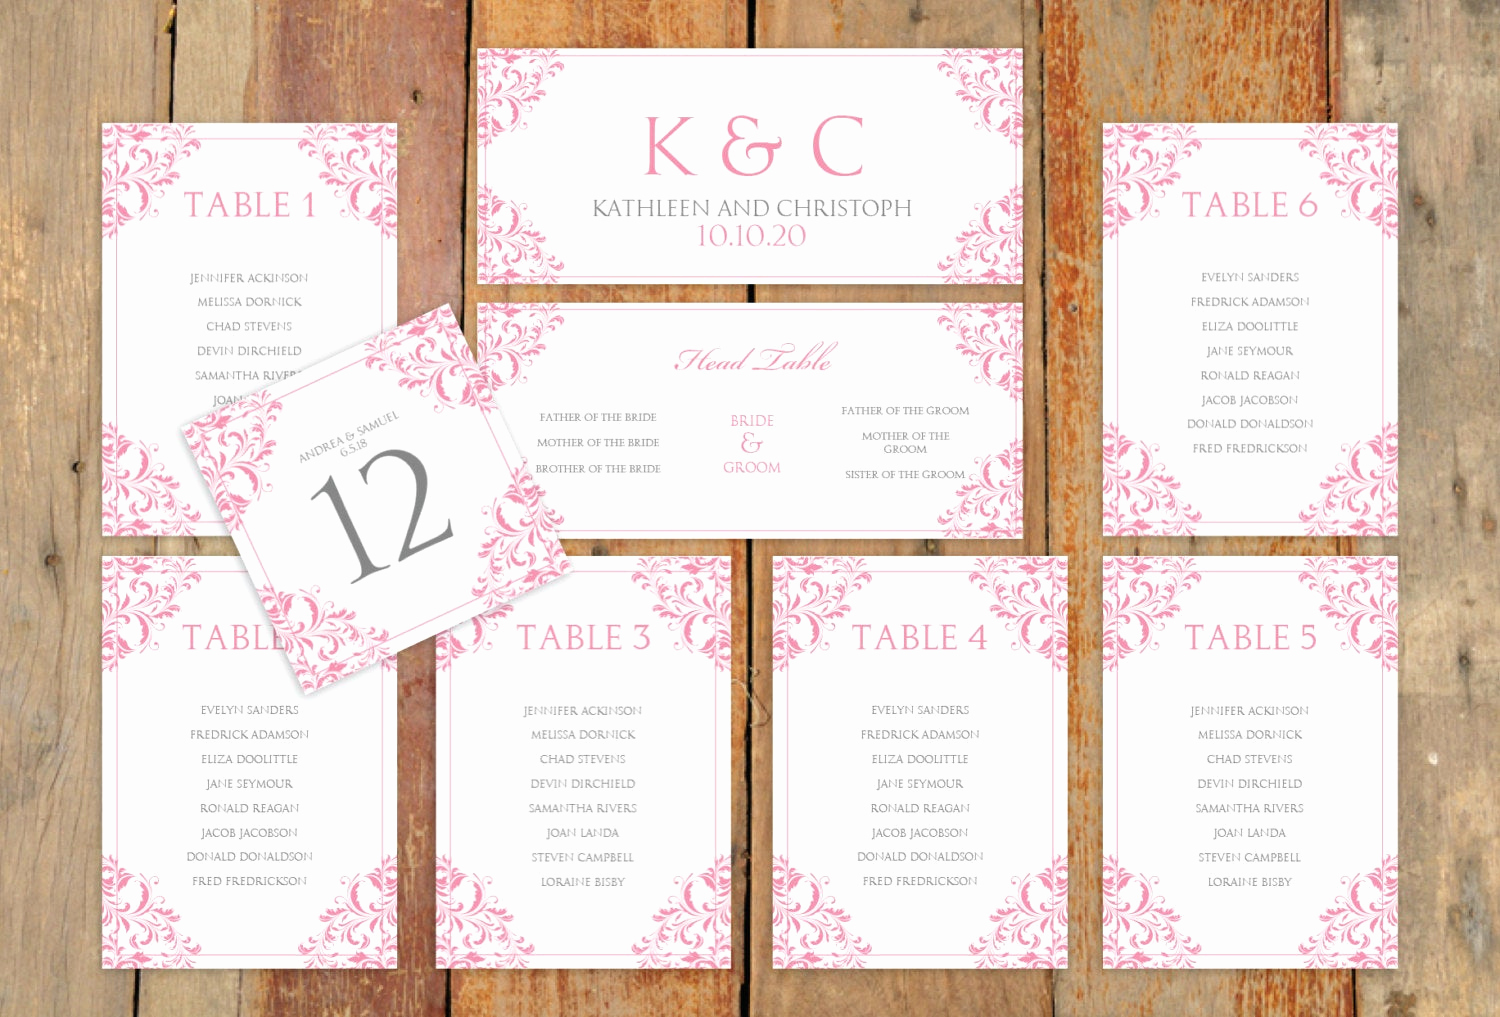 Wedding Table Seating Chart Lovely Wedding Seating Chart Template Download by Karmakweddings